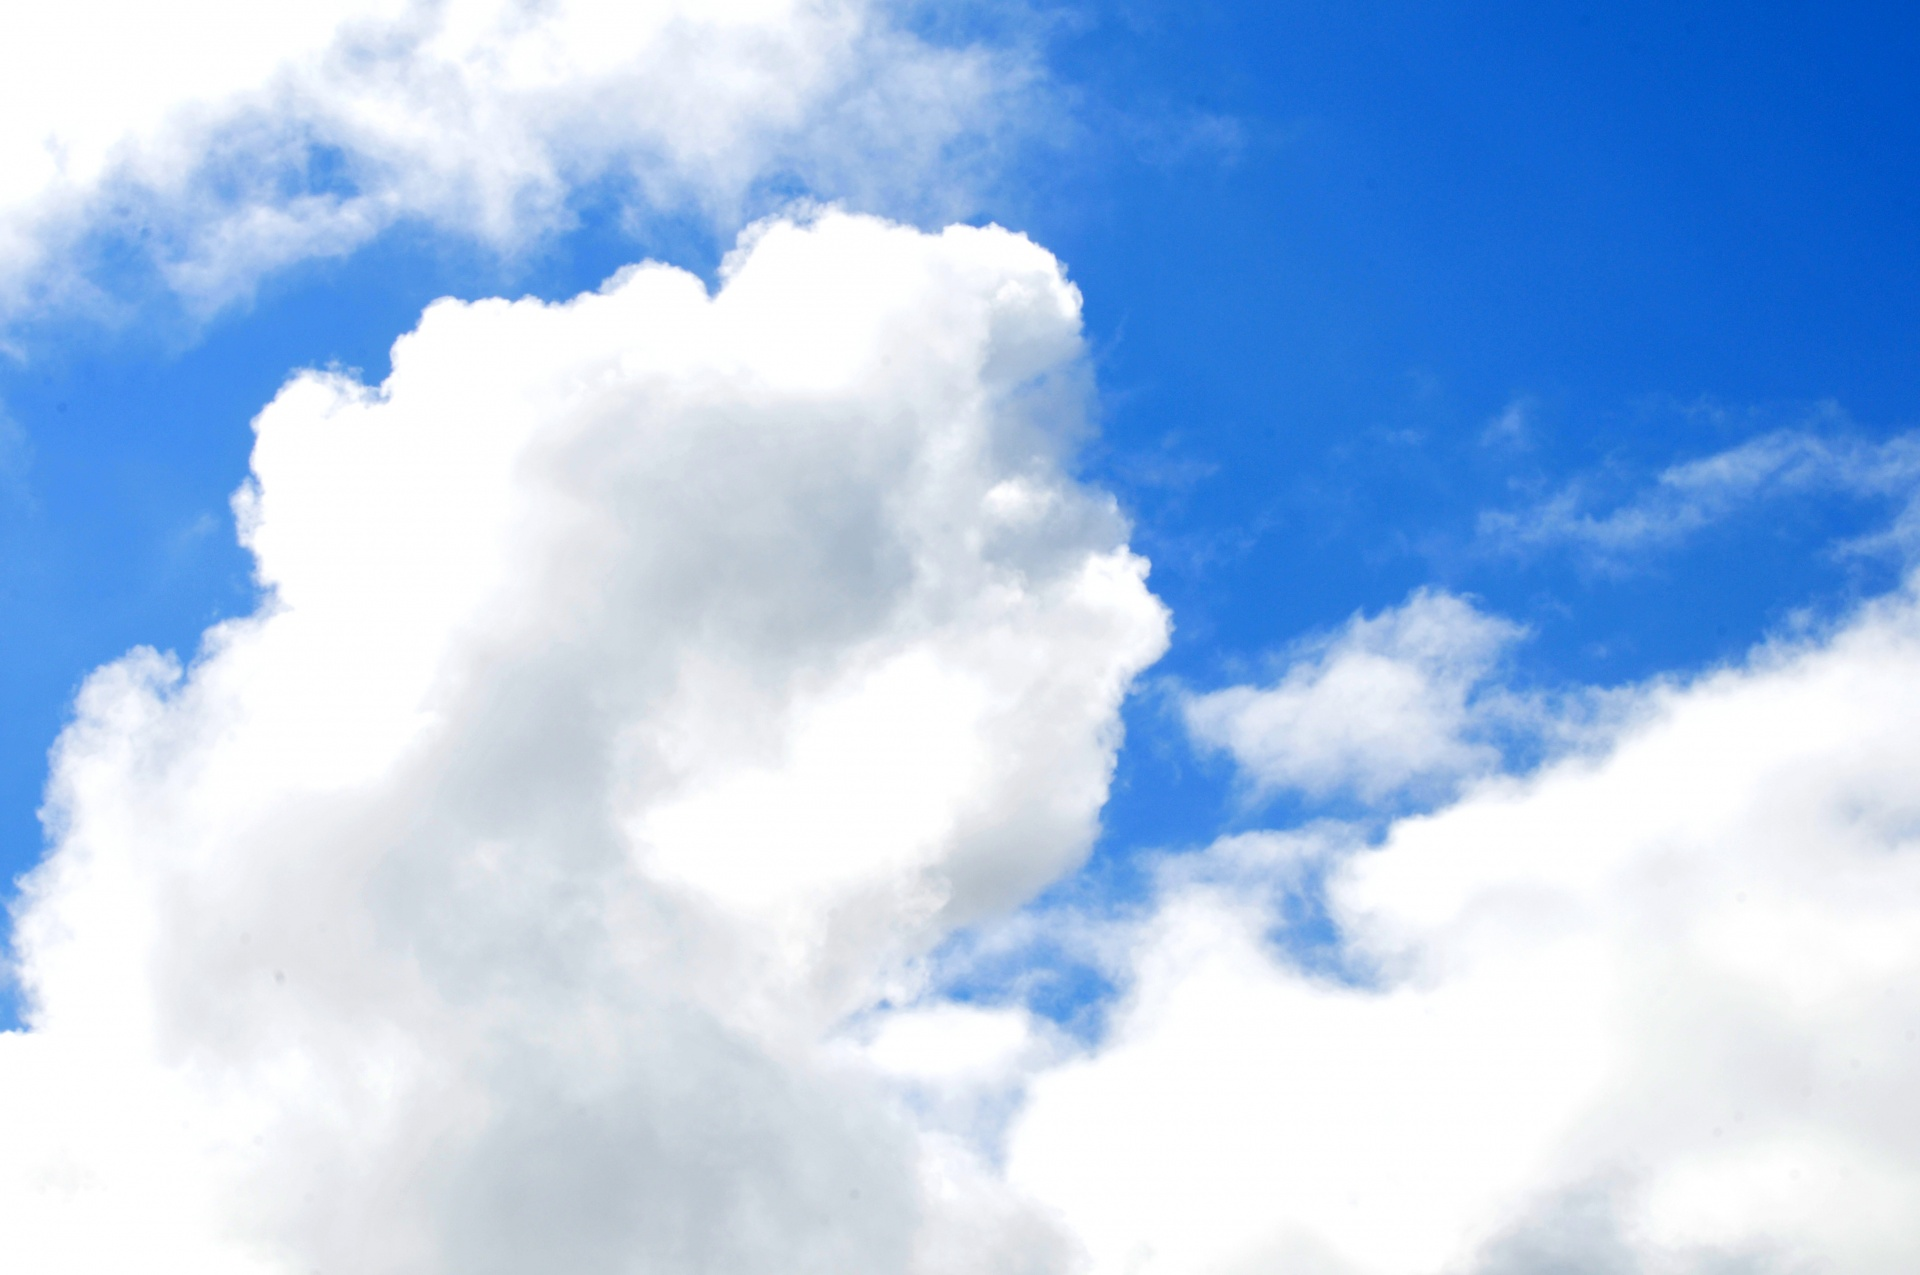 Puffy White Clouds Free Stock Photo - Public Domain Pictures